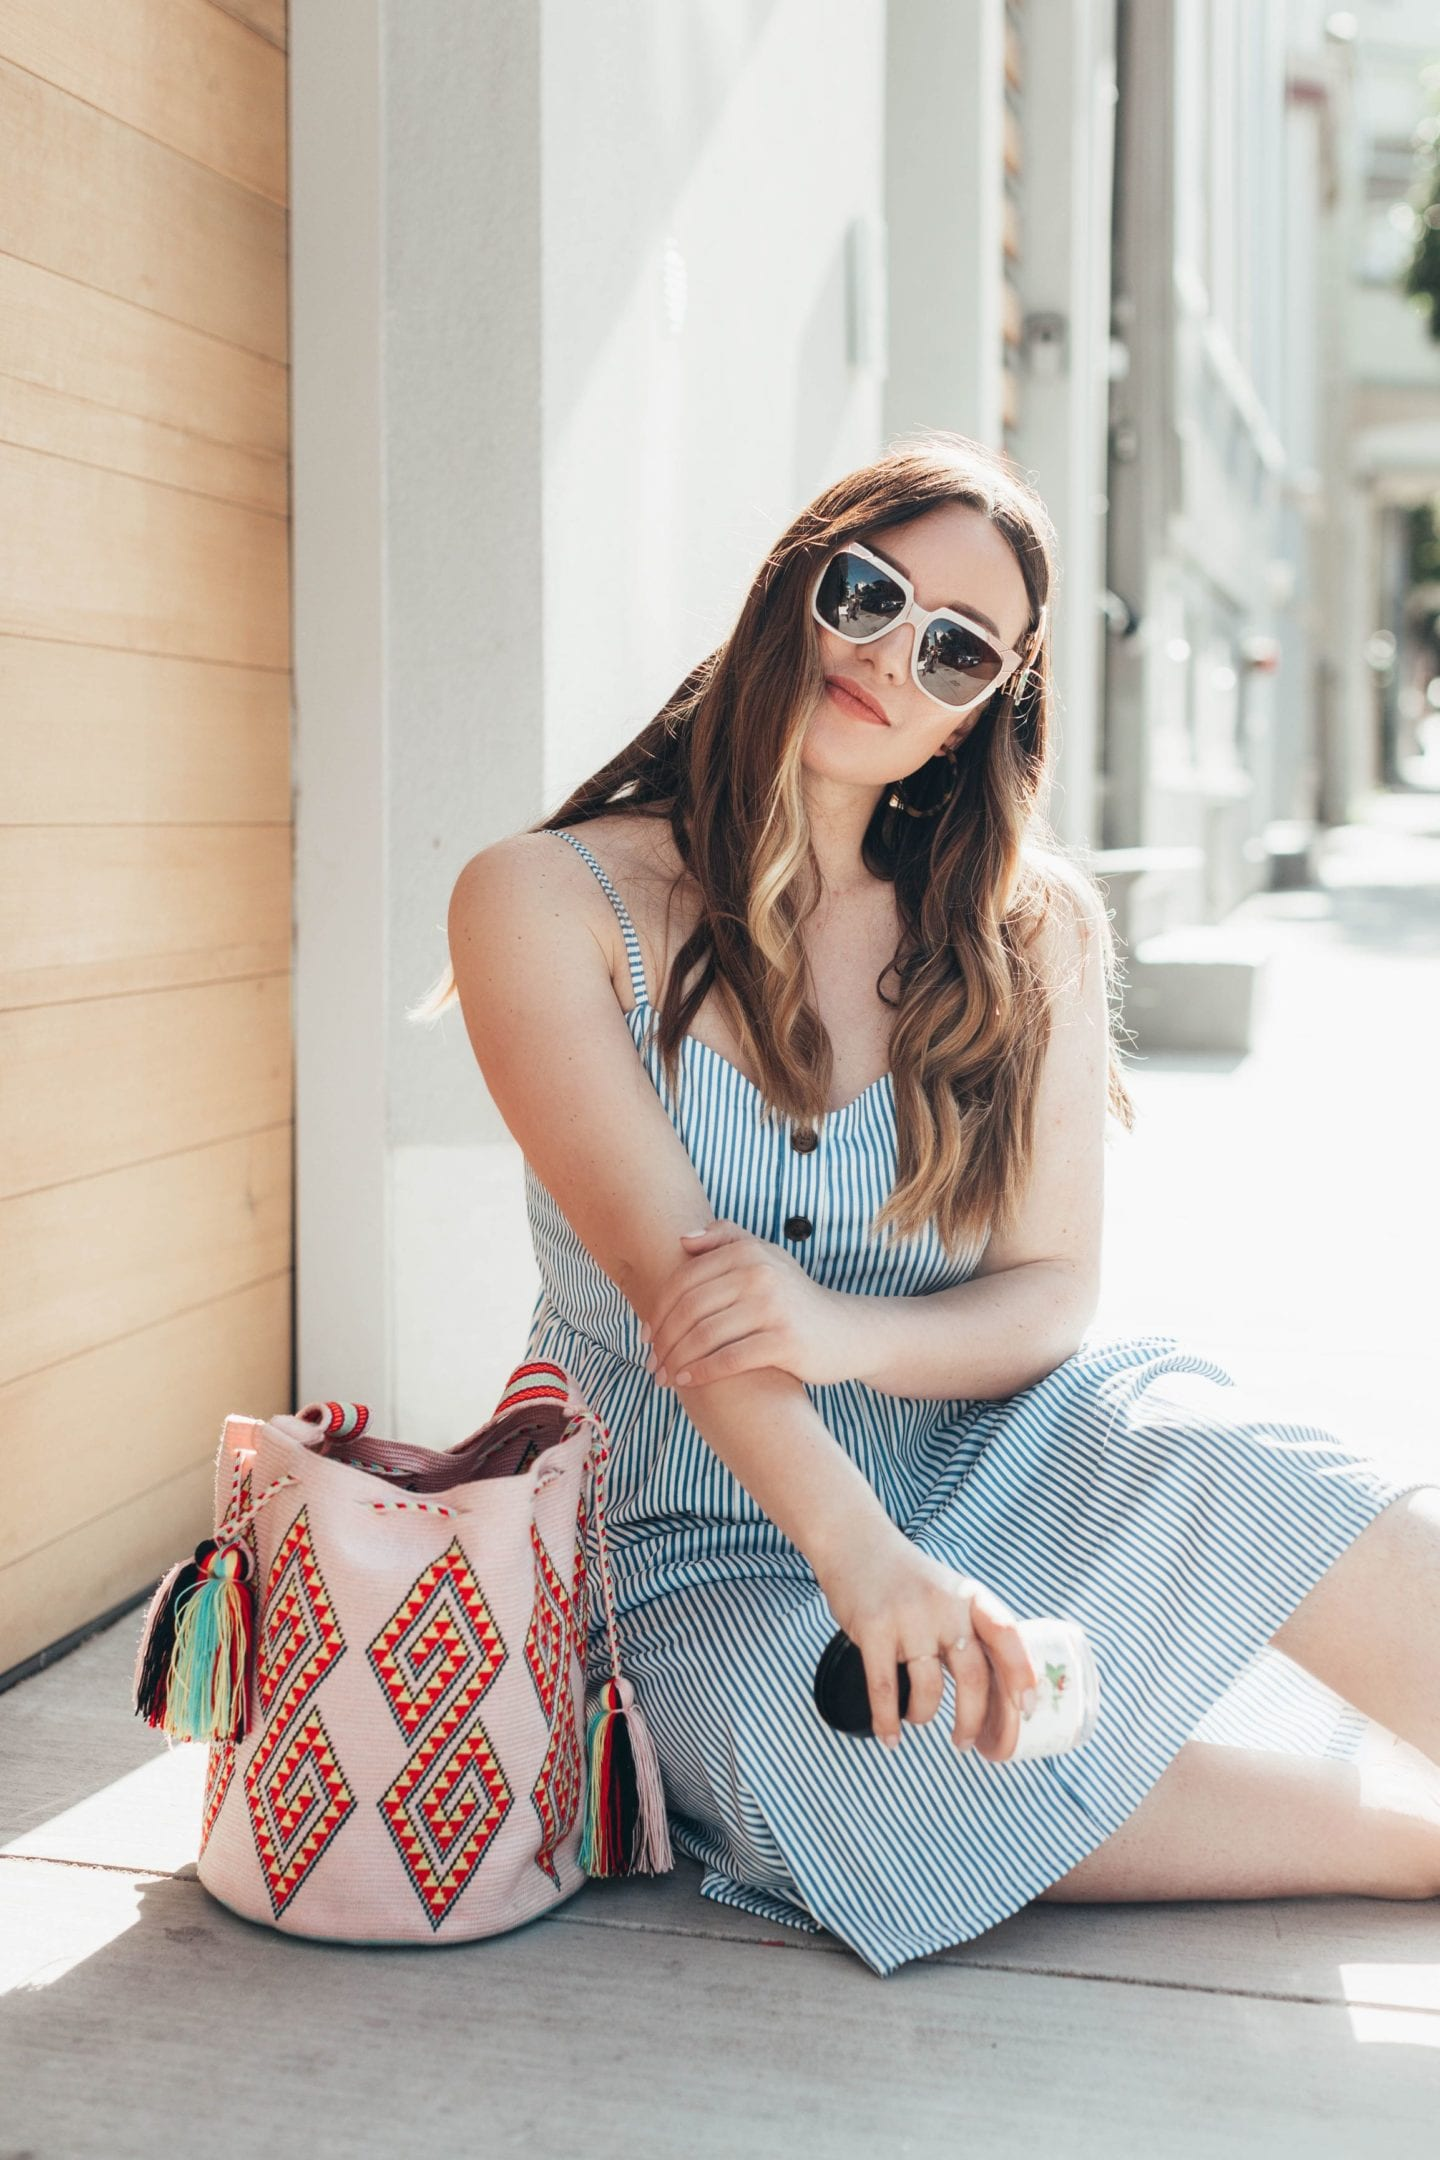 Nourish Organics Products featured by top US beauty blog Just Add Glam; Image of a woman wearing a blue striped sundress and sunglasses.